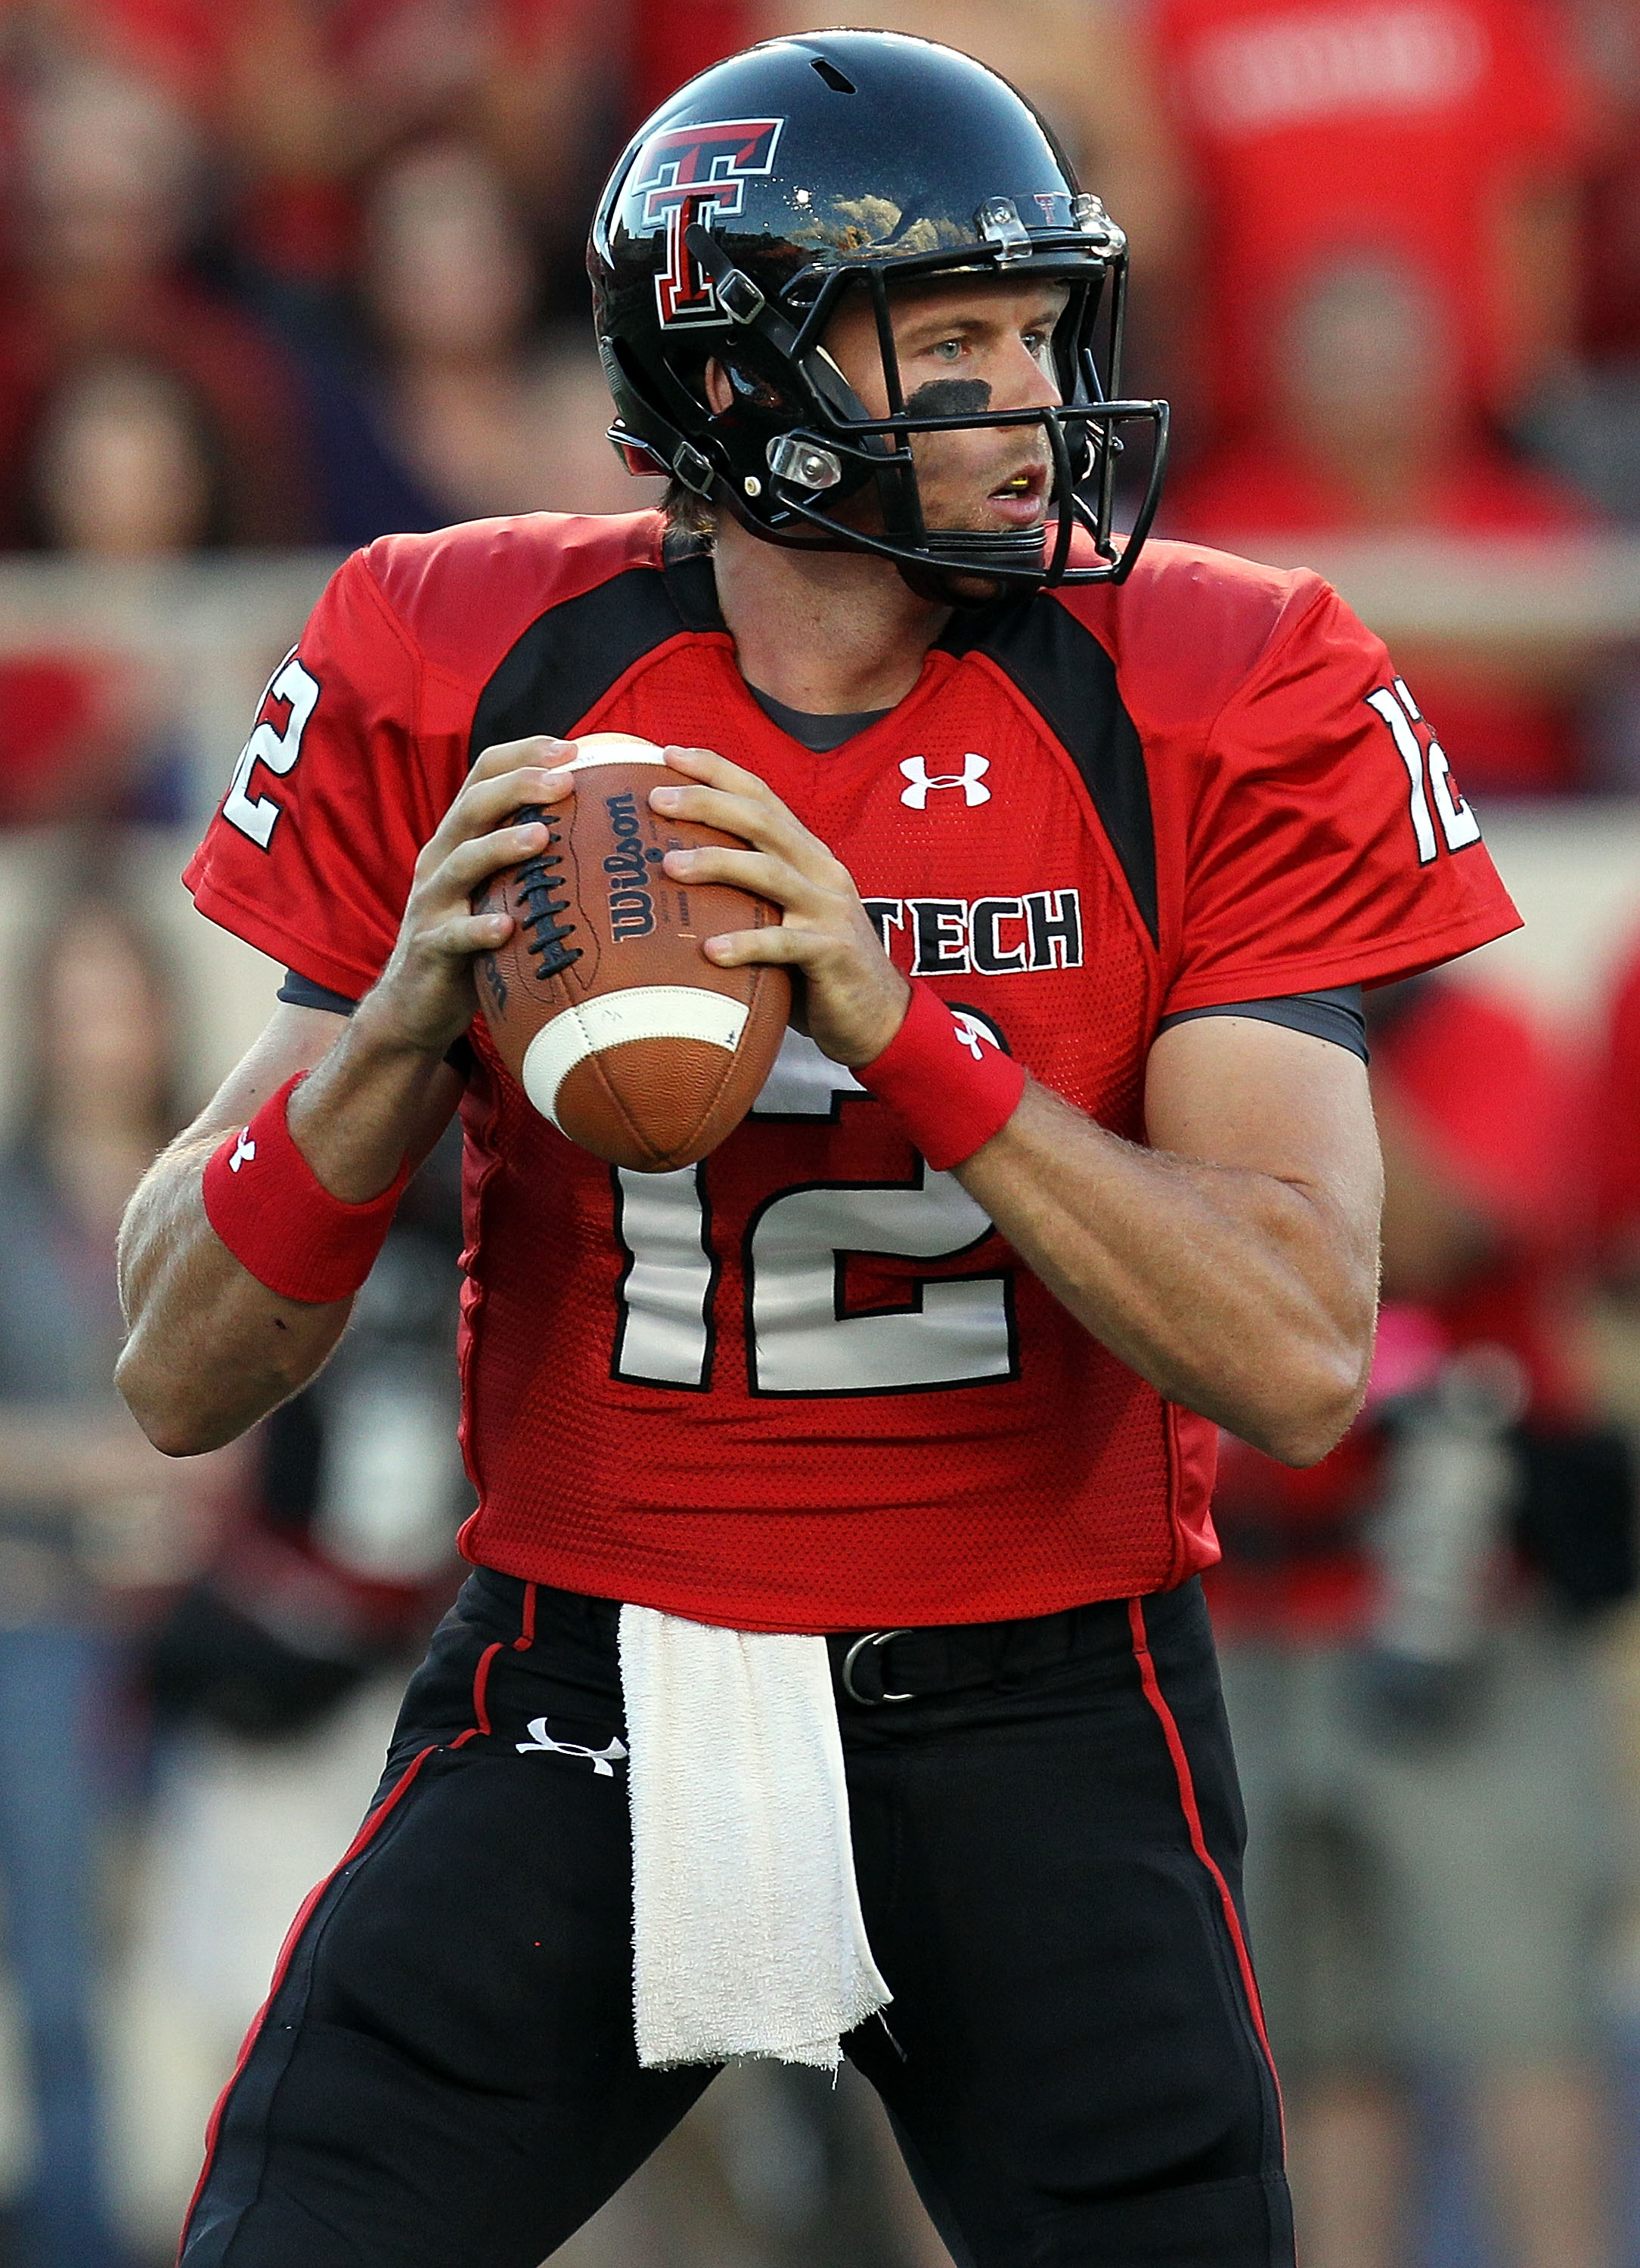 LUBBOCK, TX - SEPTEMBER 18:  Quarterback Taylor Potts #12 of the Texas Tech Red Raiders against the Texas Longhorns at Jones AT&T Stadium on September 18, 2010 in Lubbock, Texas.  (Photo by Ronald Martinez/Getty Images)